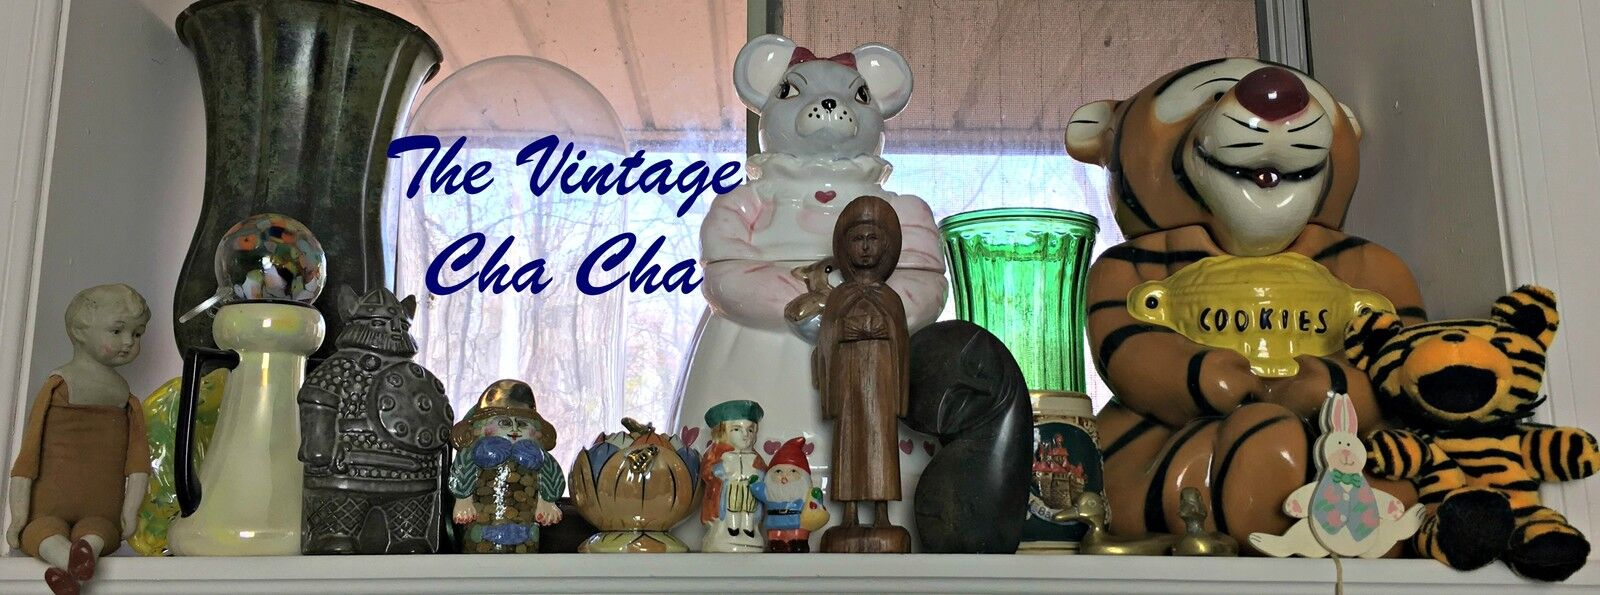 The Vintage ChaCha